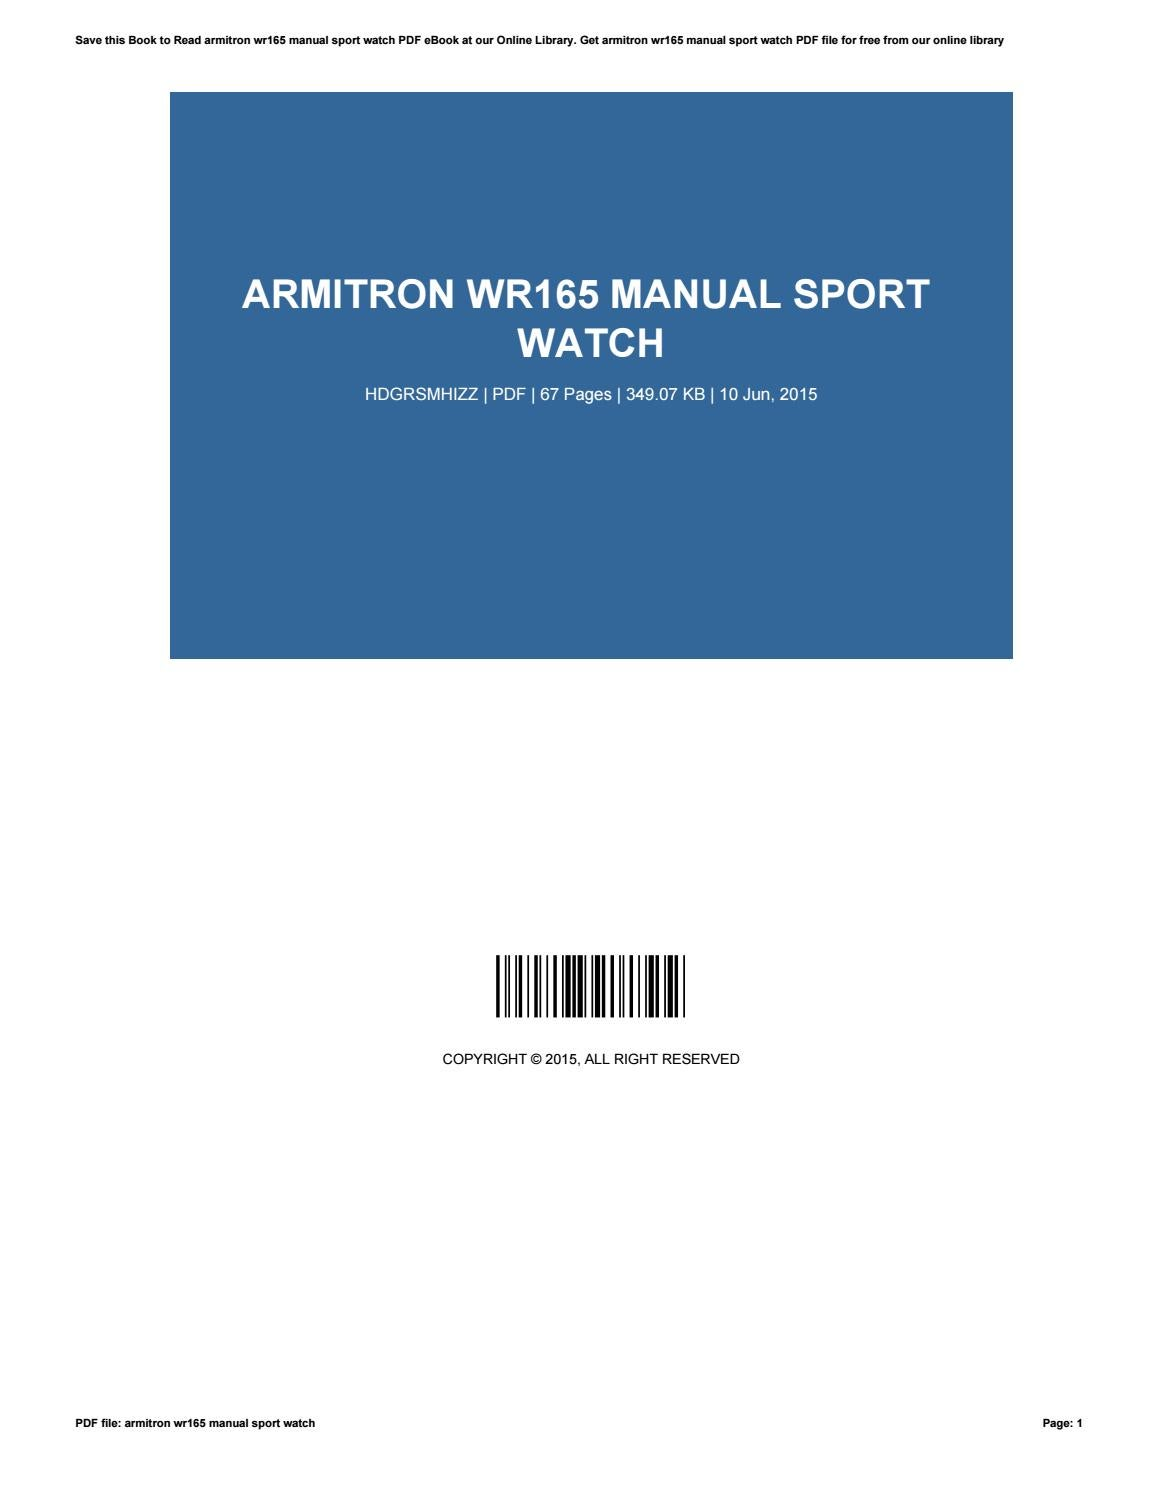 armitron wr165 manual sport watch by wendylee3474 issuu rh issuu com armitron wr 165 ft watch set time Armitron 40 8089 Instruction Manual